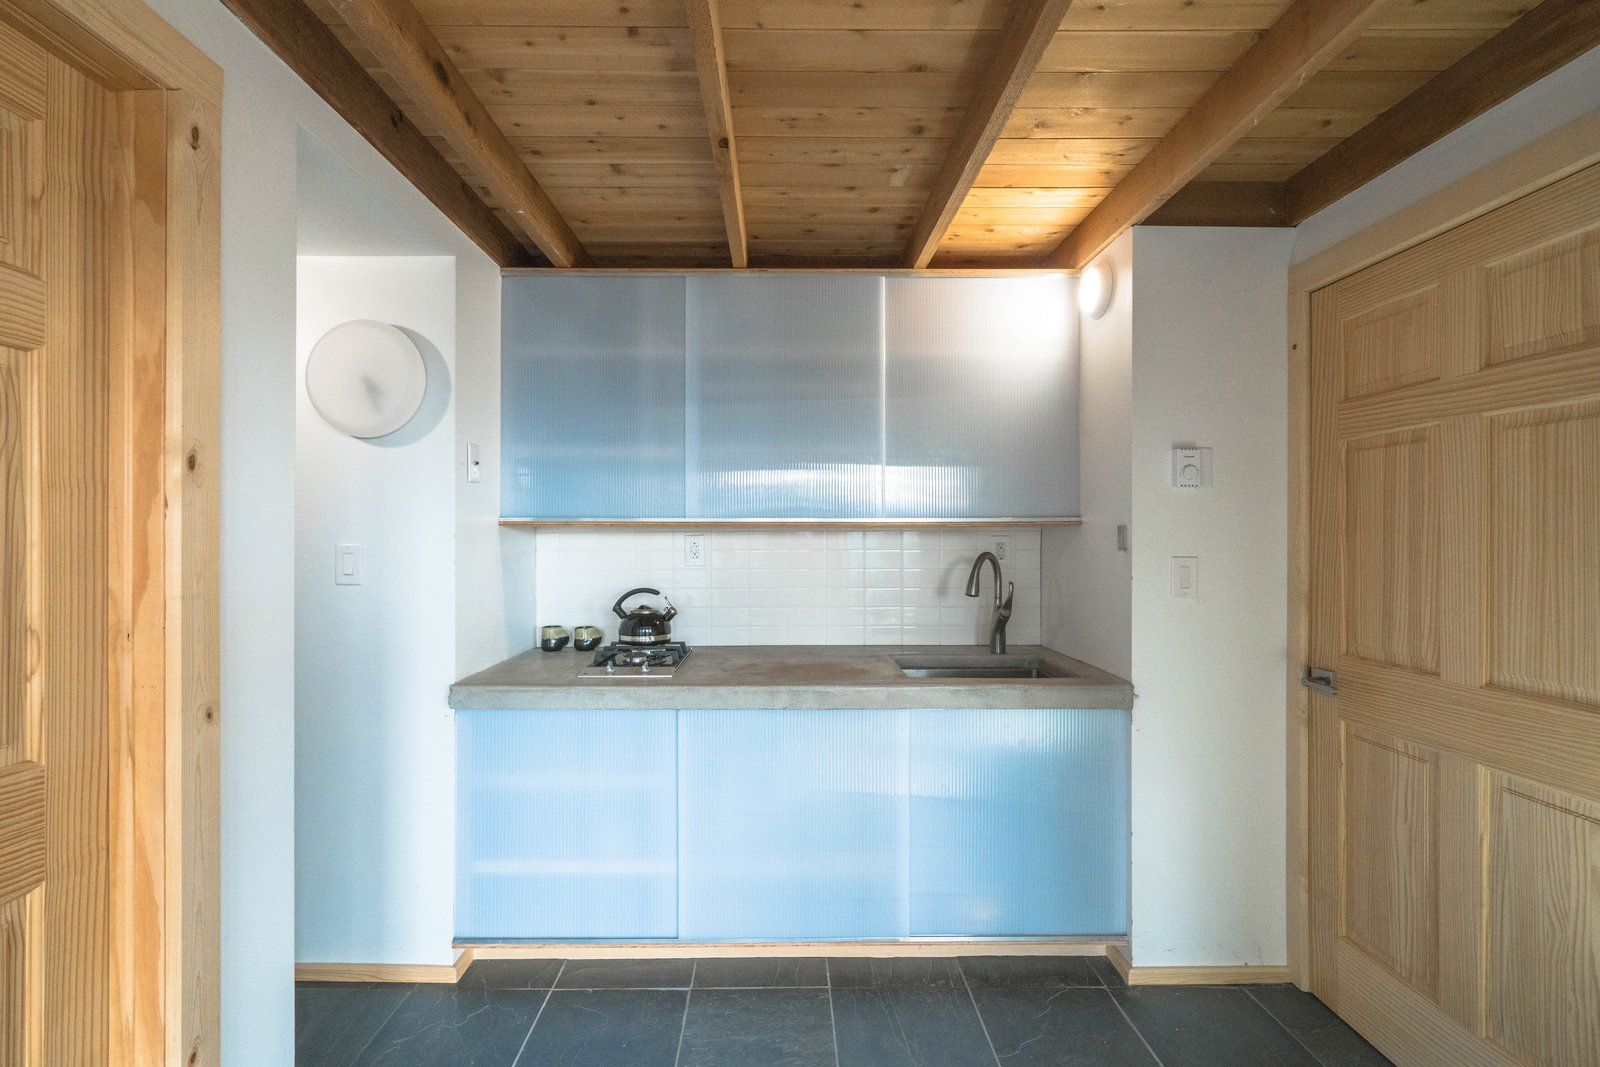 Tagged: Kitchen, Concrete Counter, Wood Cabinet, Slate Floor, Ceramic Tile Backsplashe, Wall Lighting, Cooktops, and Undermount Sink.  MARTaK Passive House by Baosol Design